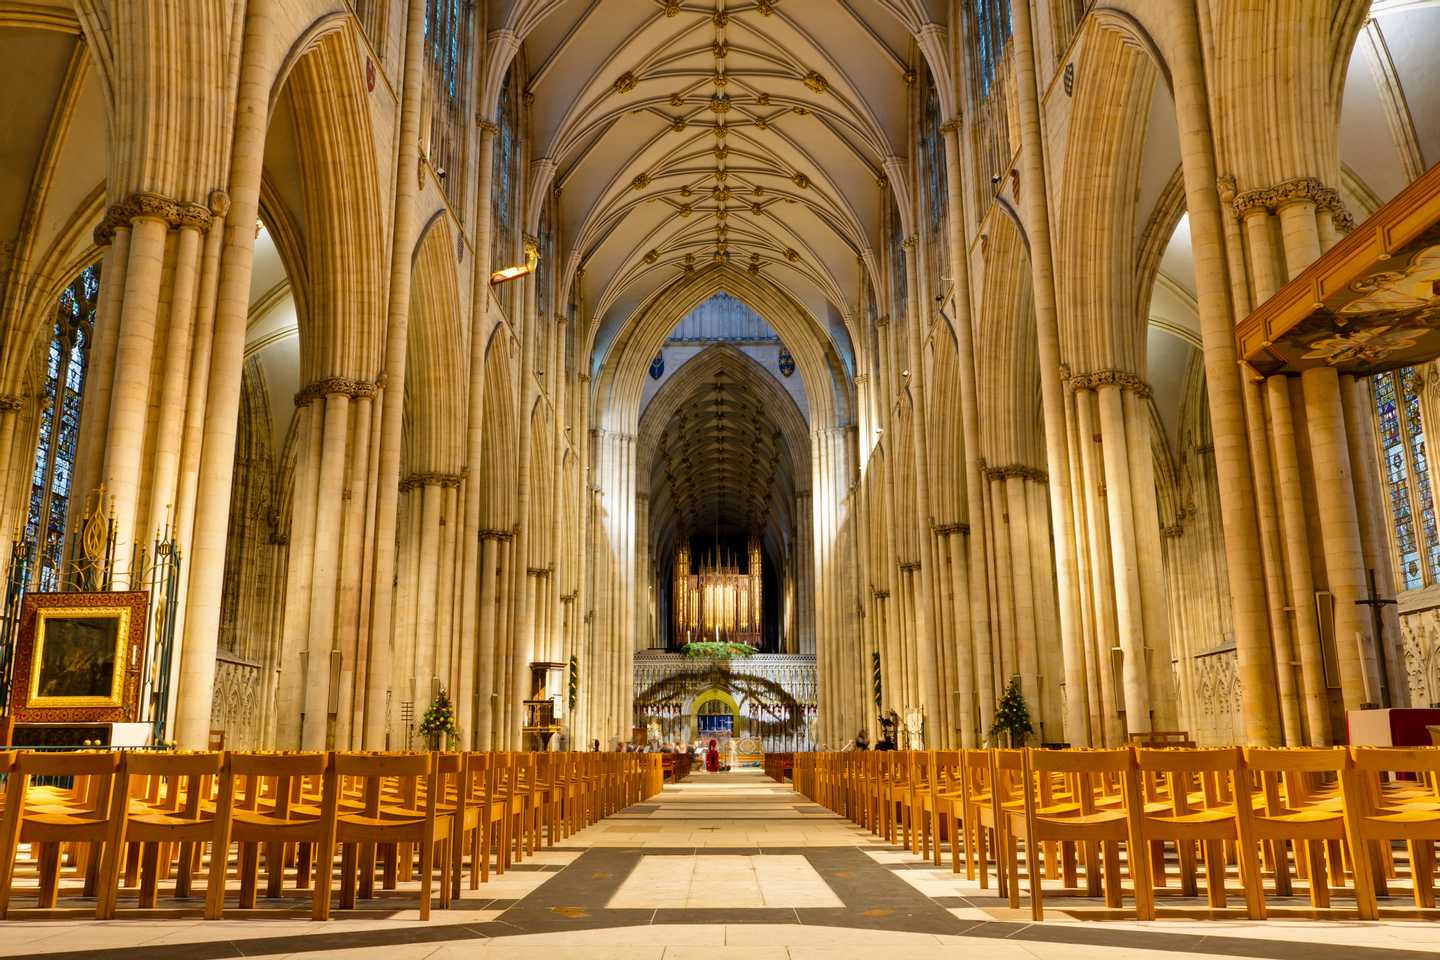 Interior of York Minster in Yorkshire